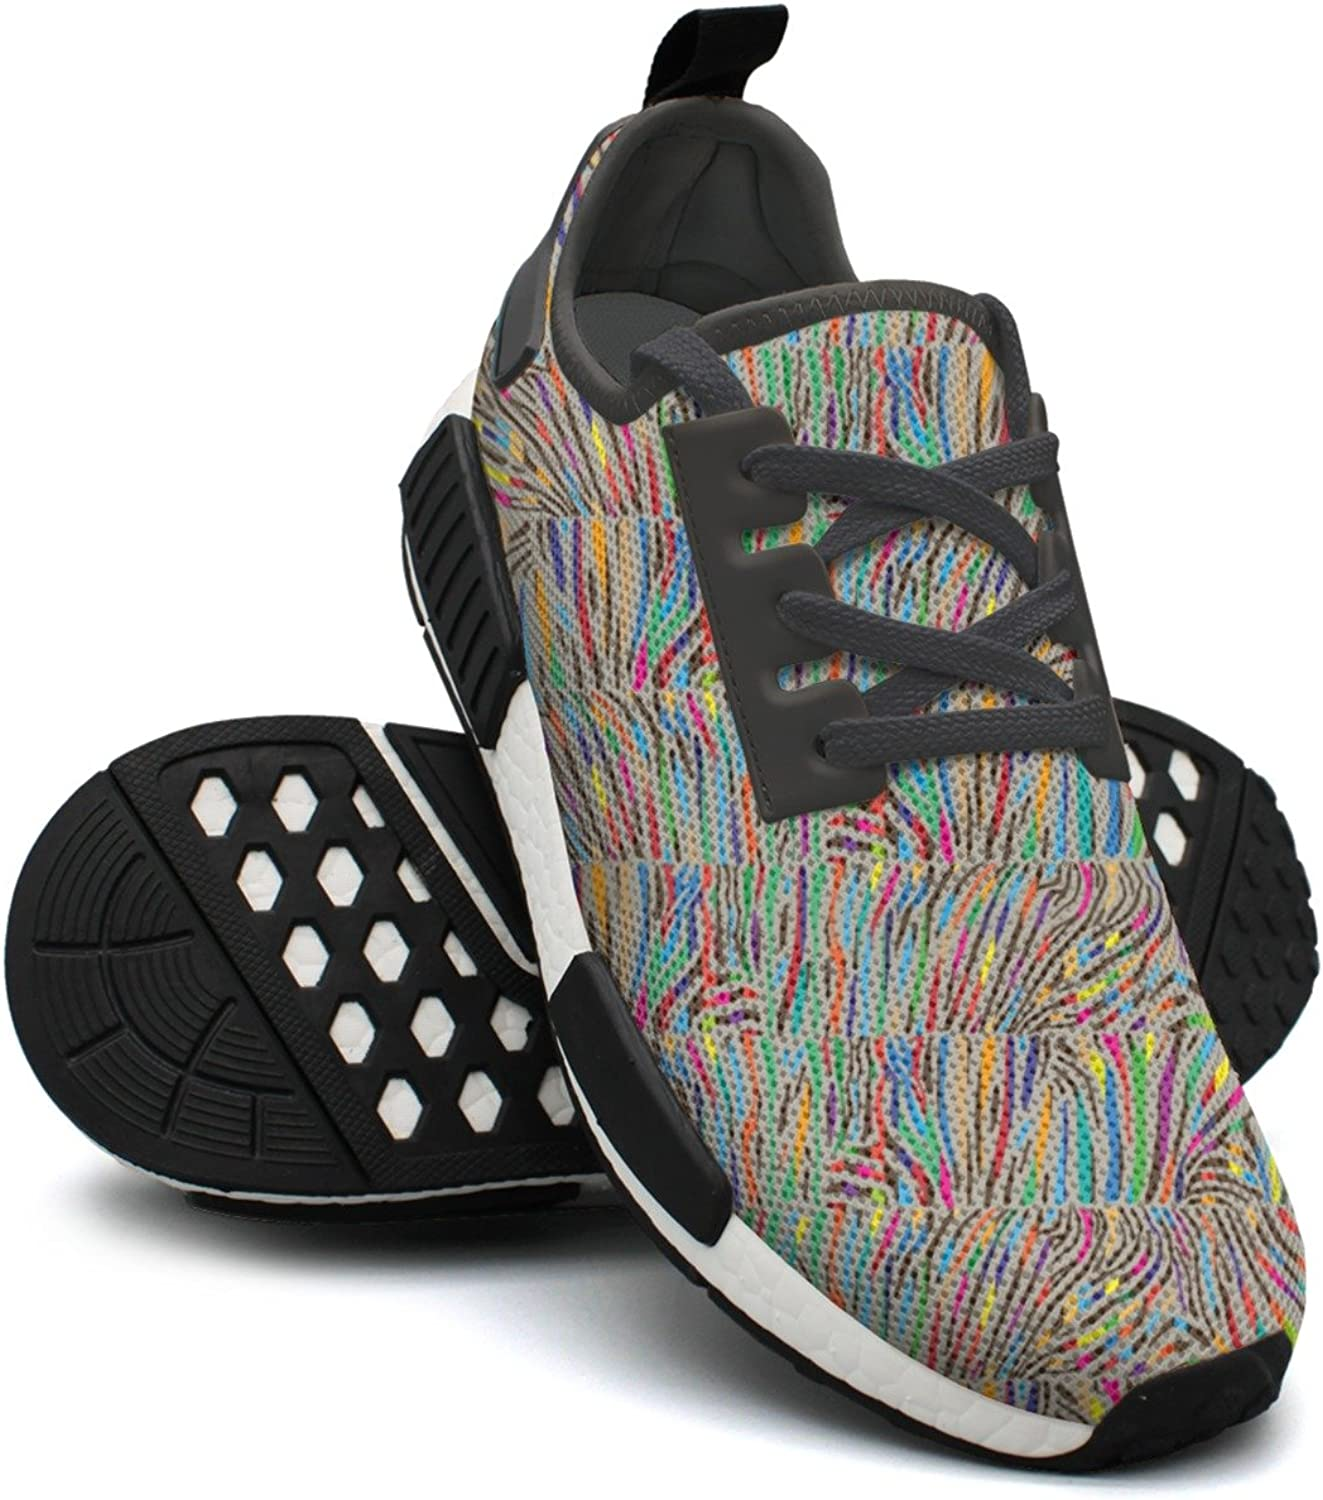 WESER Multicolord Zebra Skin Cute Gym Trail Running shoes NMD